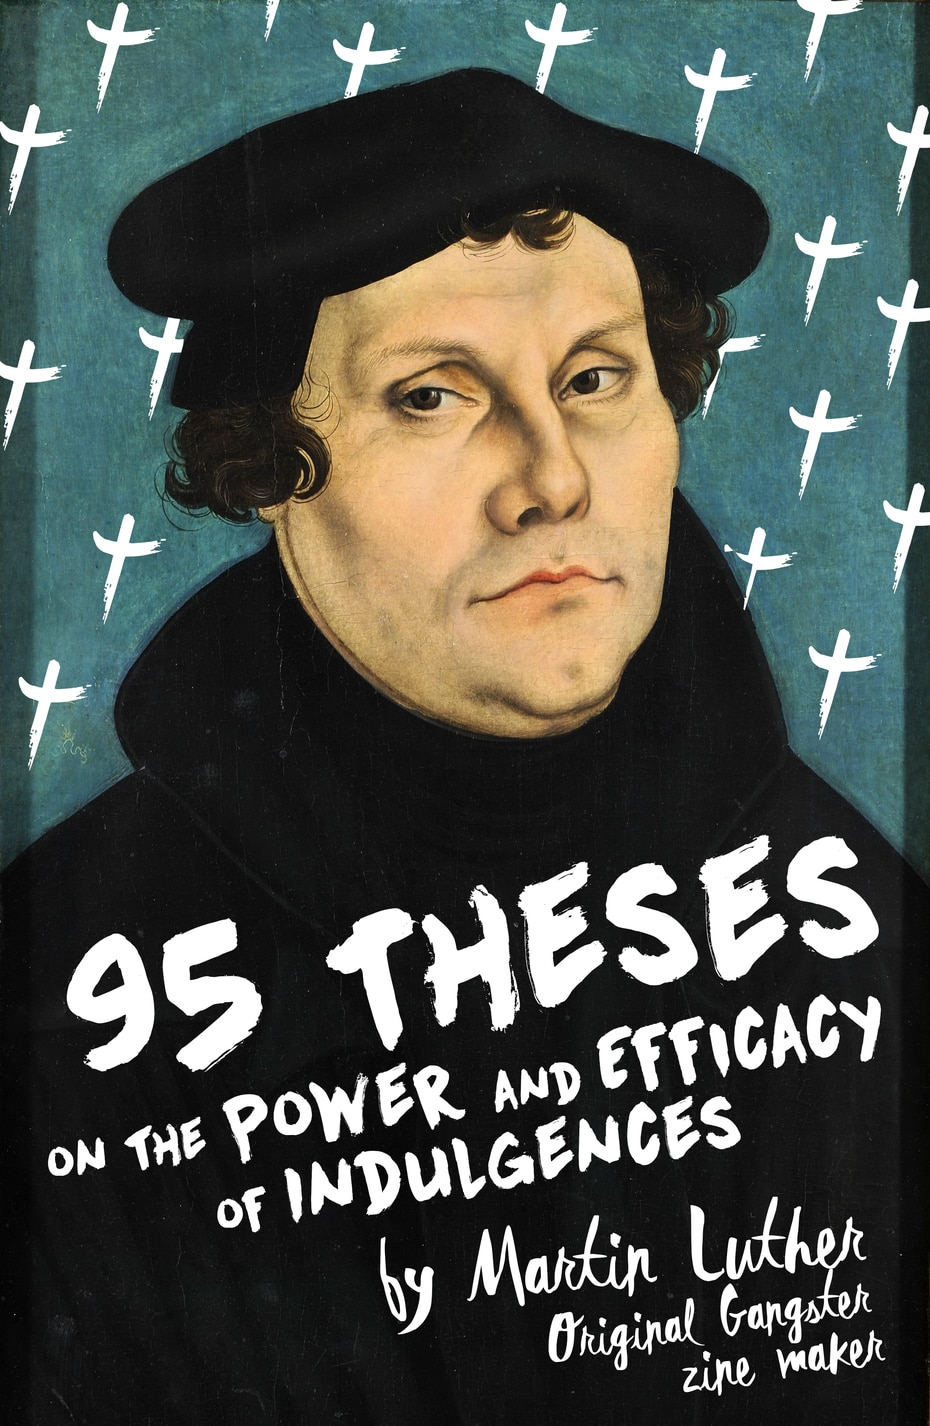 Potential zine cover art if Martin Luther's 95 Theses were to be re-printed.